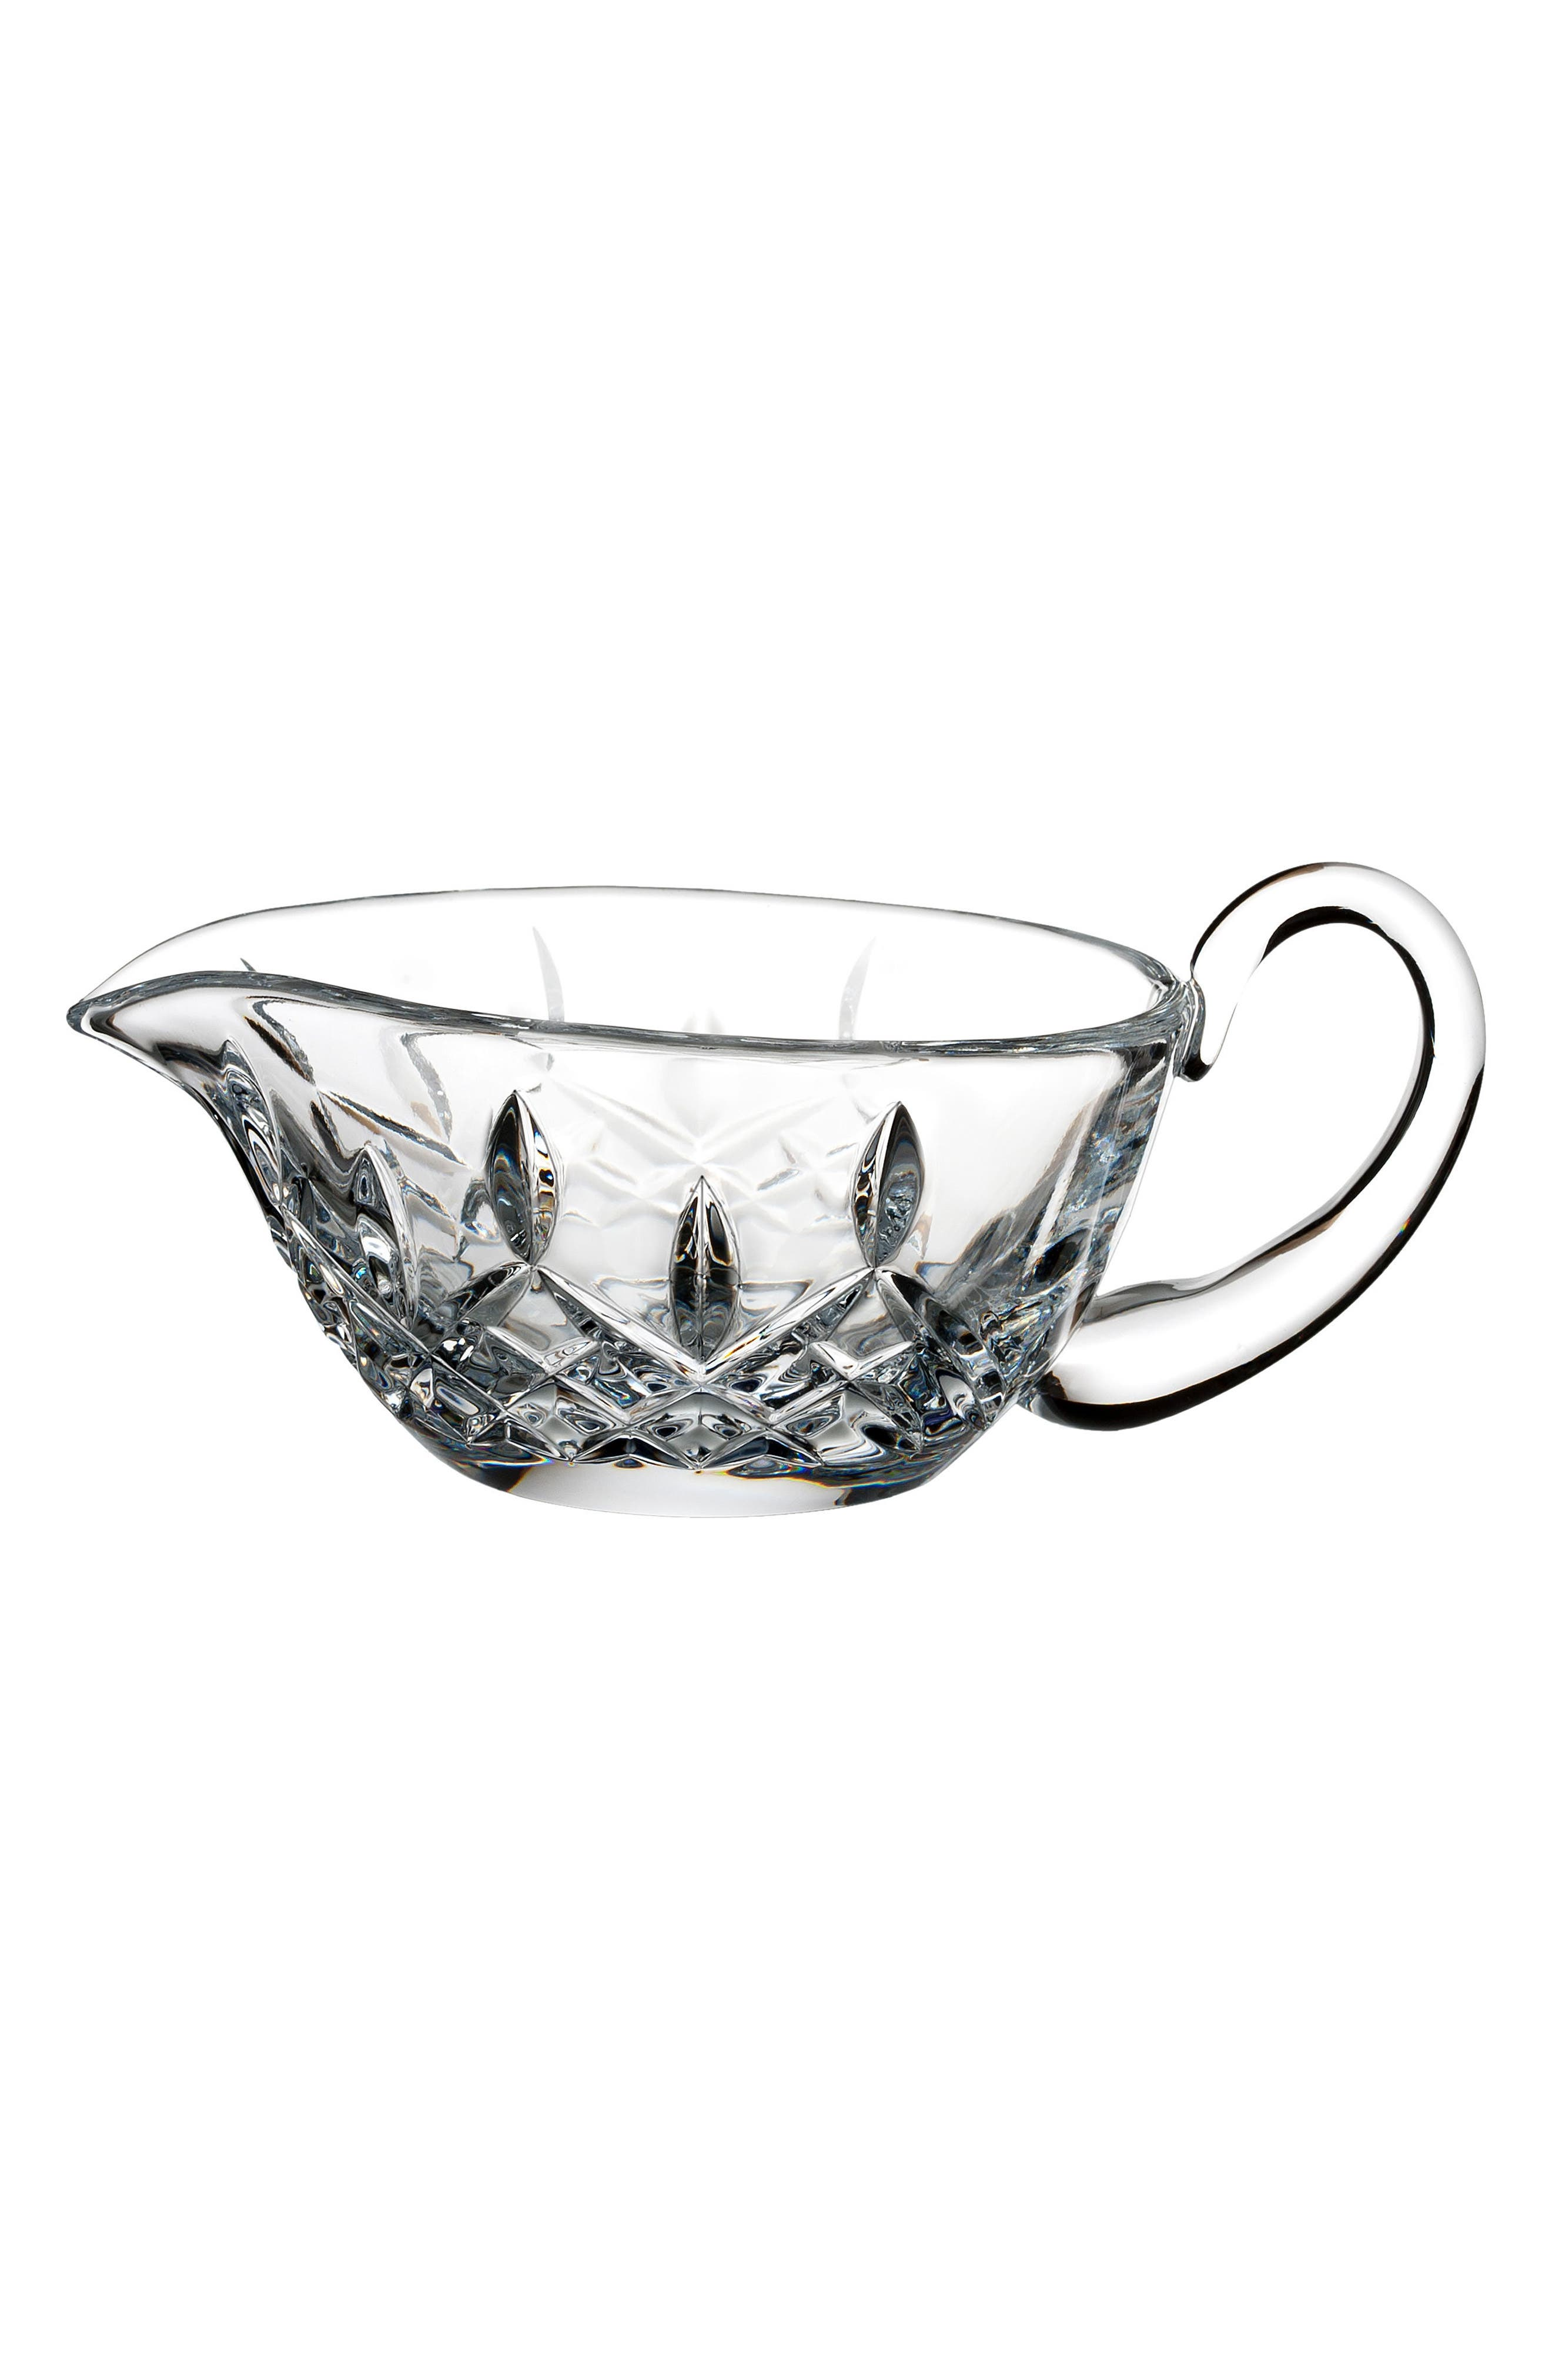 Alternate Image 1 Selected - Waterford Lismore Lead Crystal Gravy Server